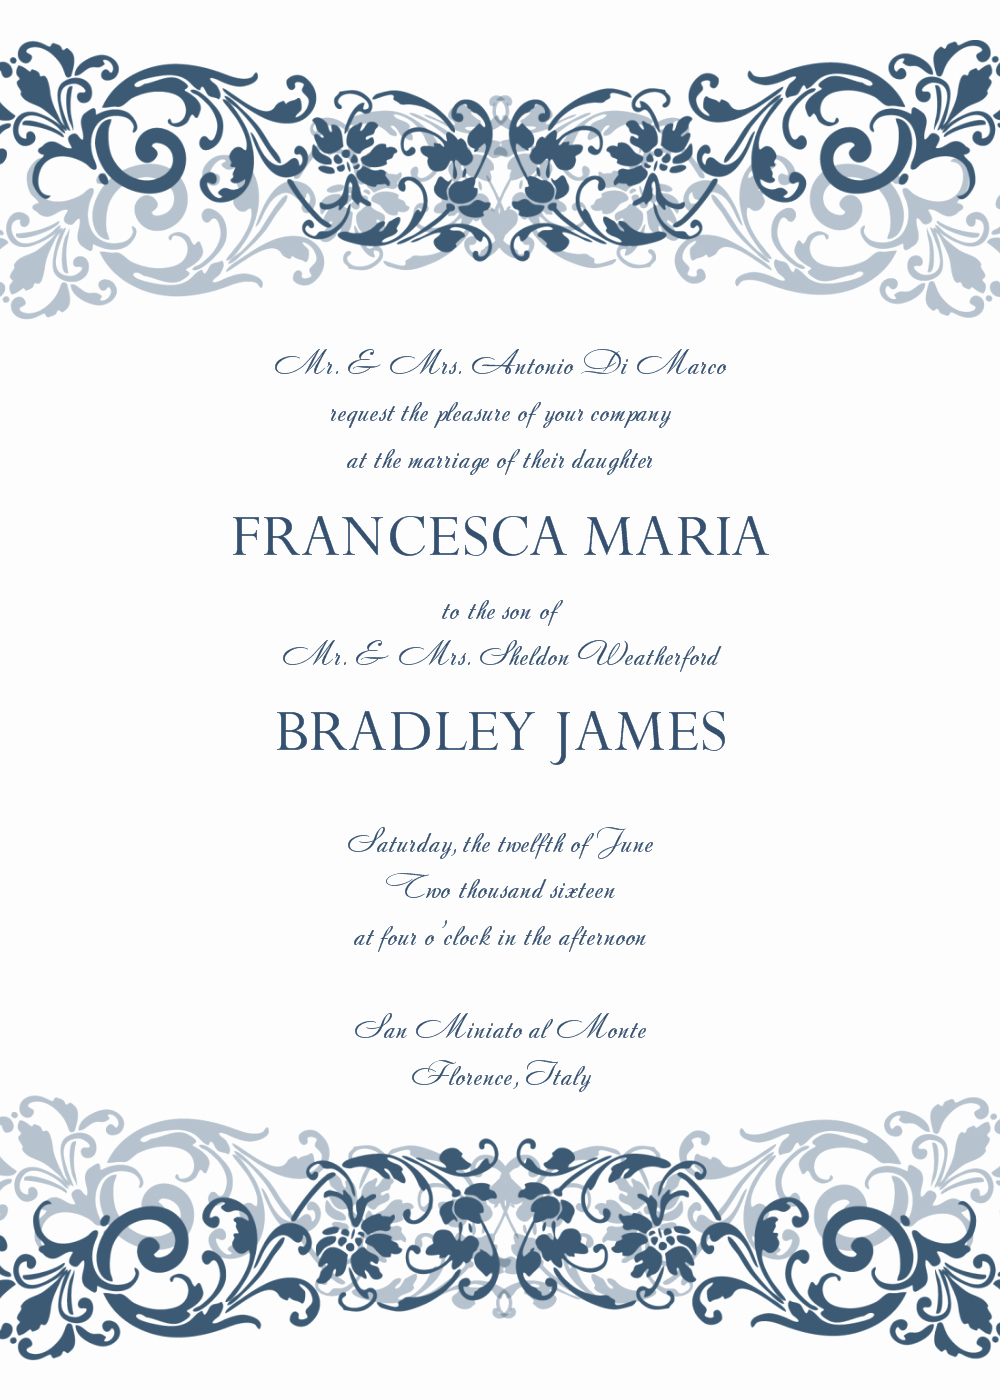 Free Printable Invitations Templates New 30 Free Wedding Invitations Templates